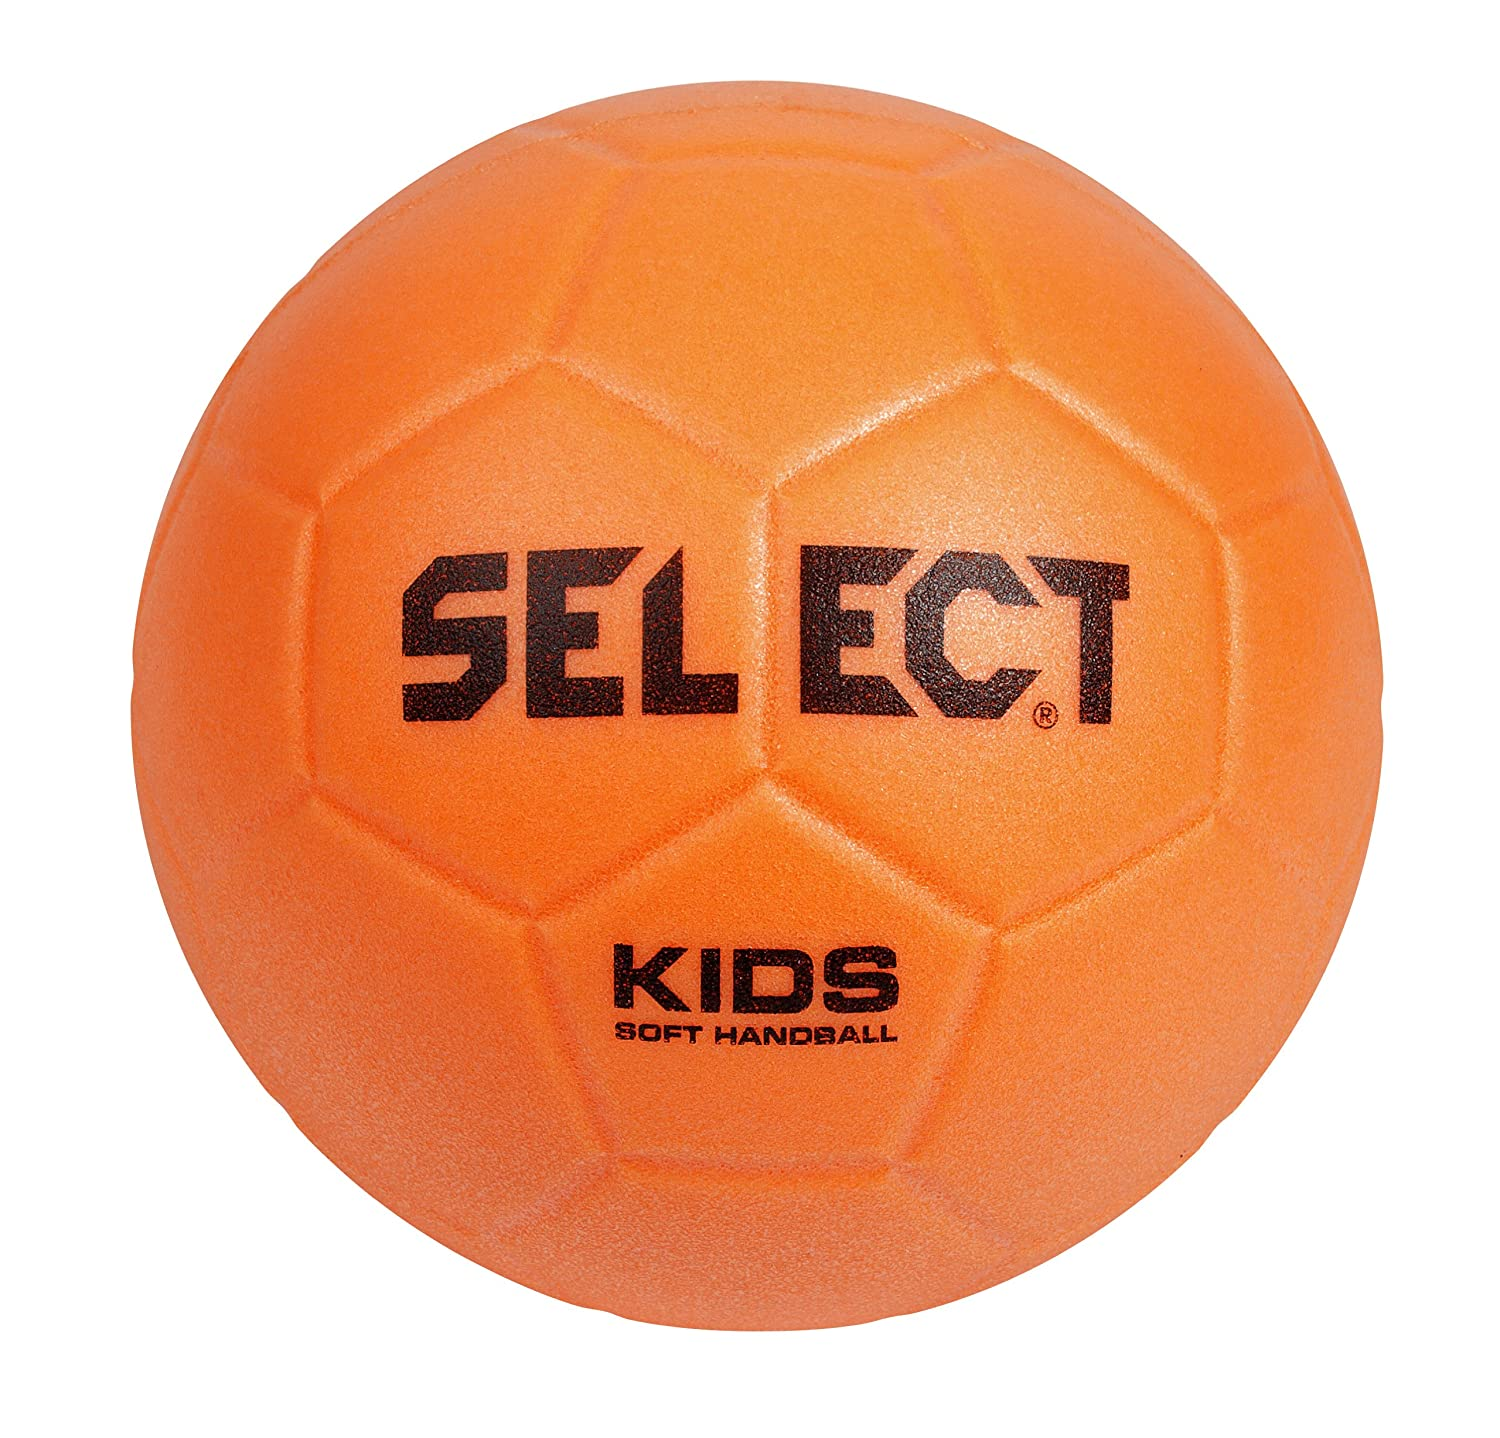 Select Soft Handball Kids Soft Handball - Pelota de Balonmano (Infantil)